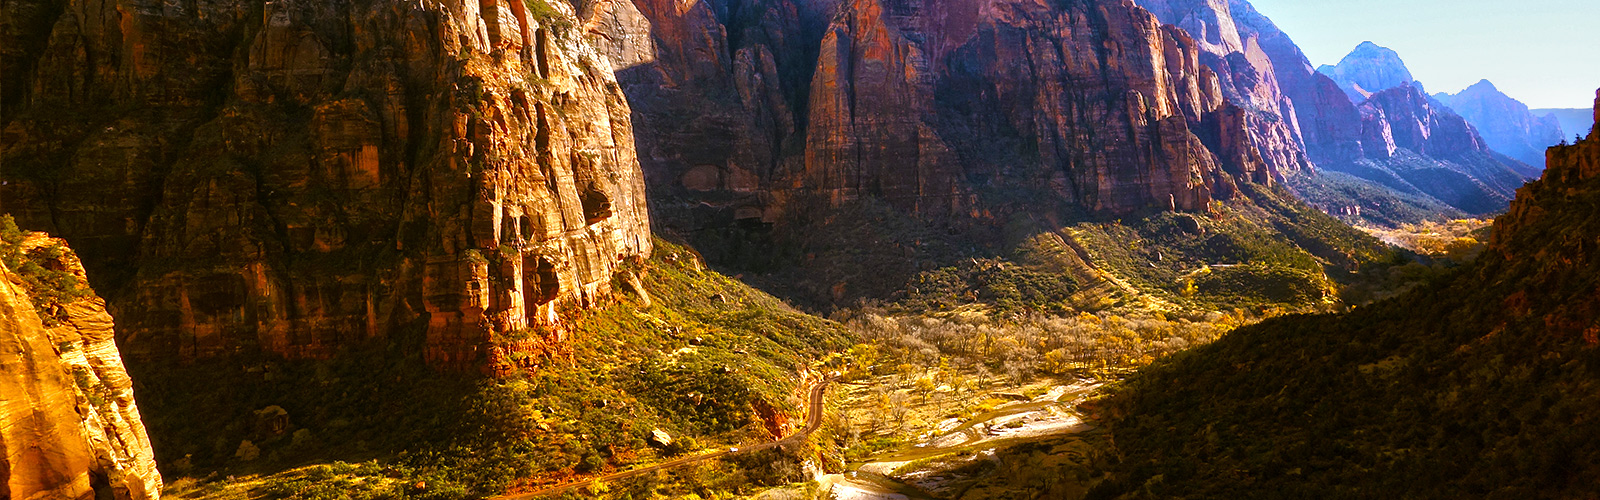 3 Day Itinerary for Zion National Park